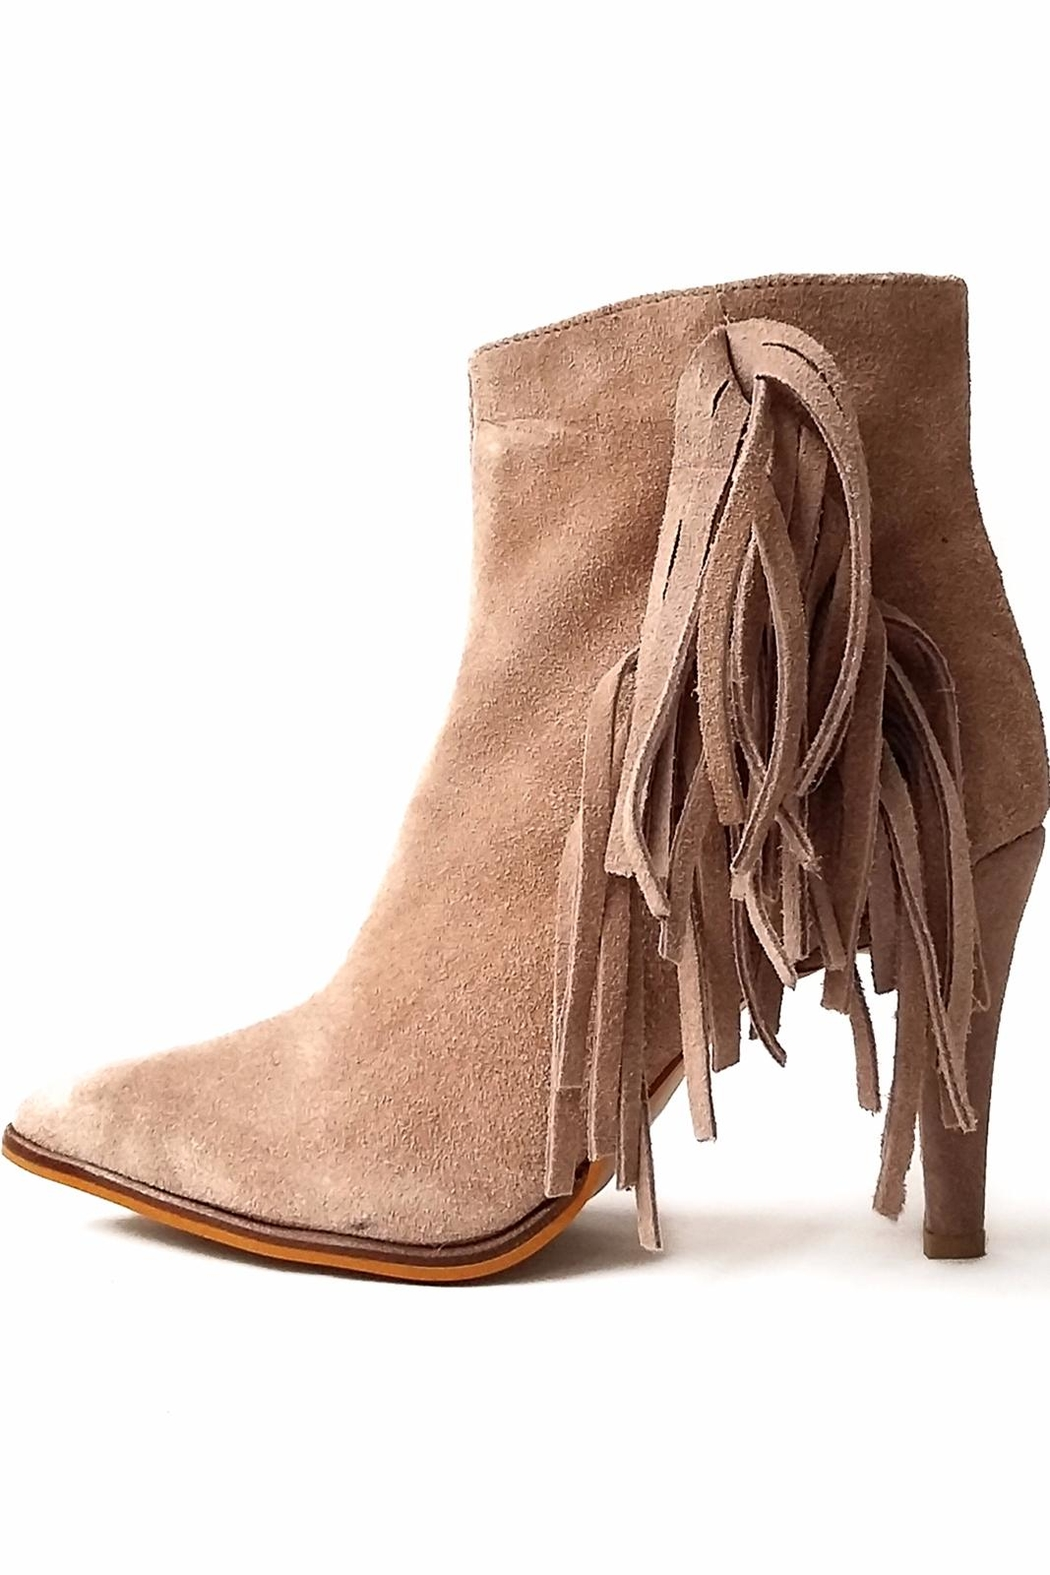 MIYE COLLAZZO Beige Suede Bootie - Front Cropped Image